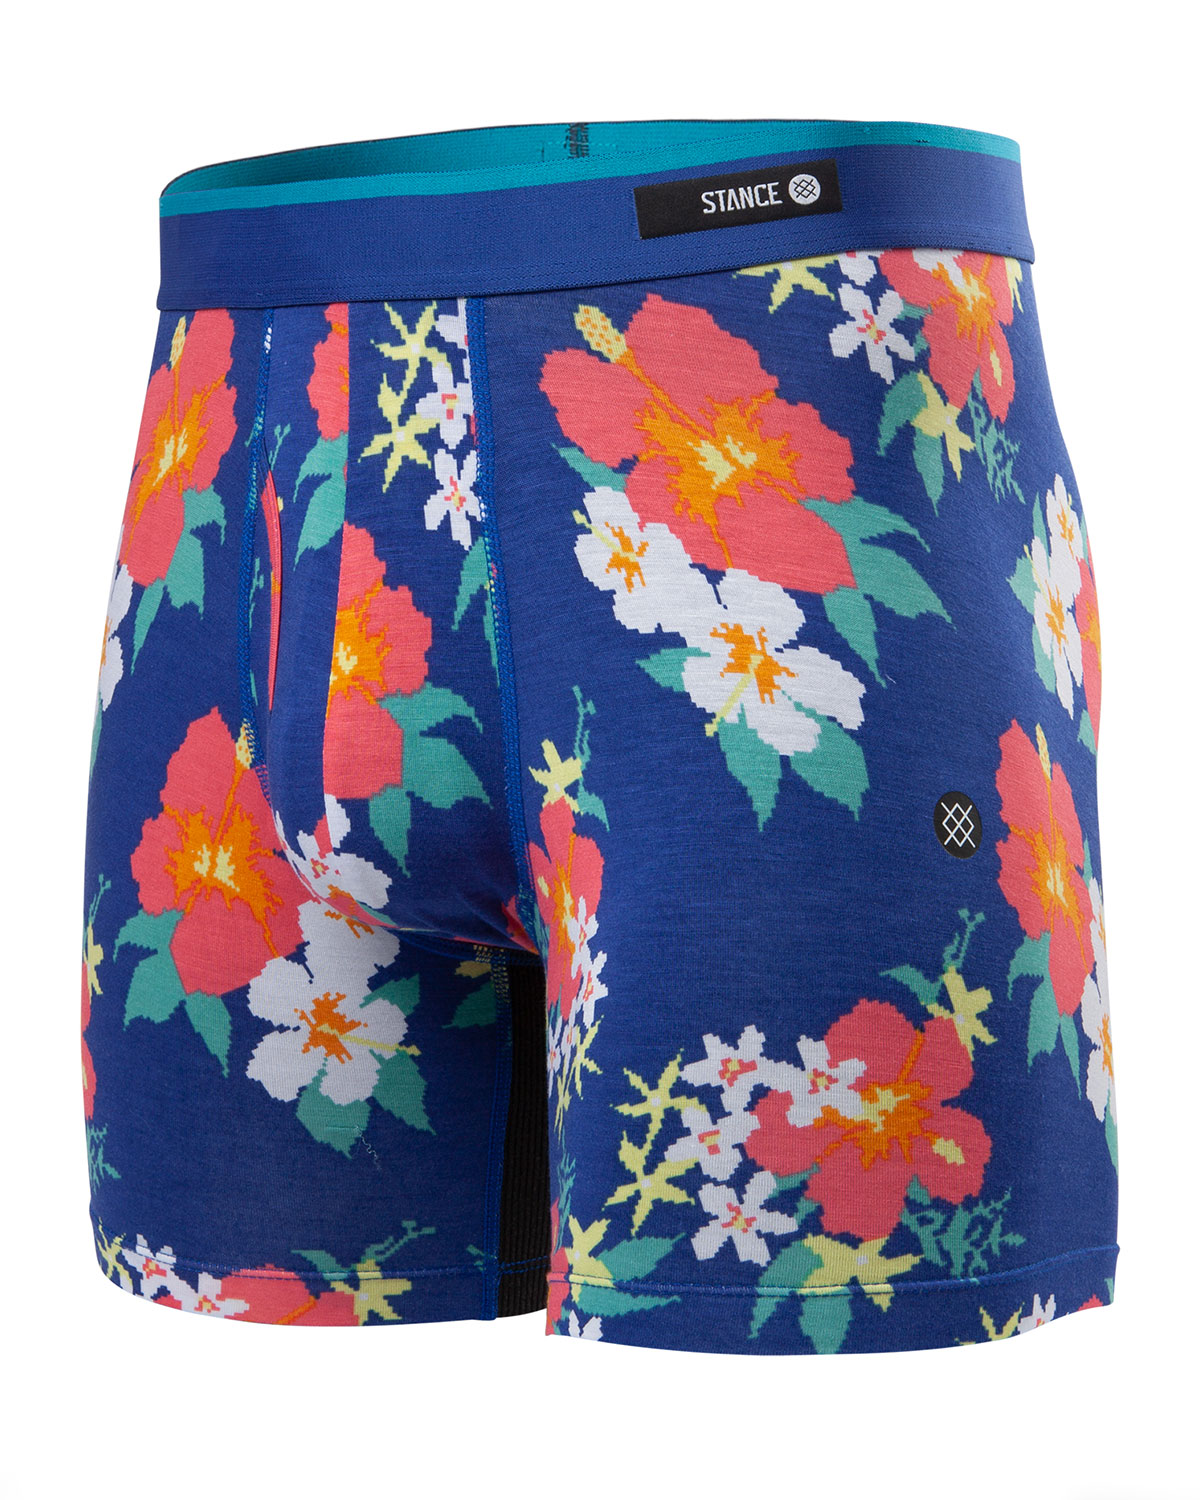 Stance Men's Digiflor Boxer Briefs